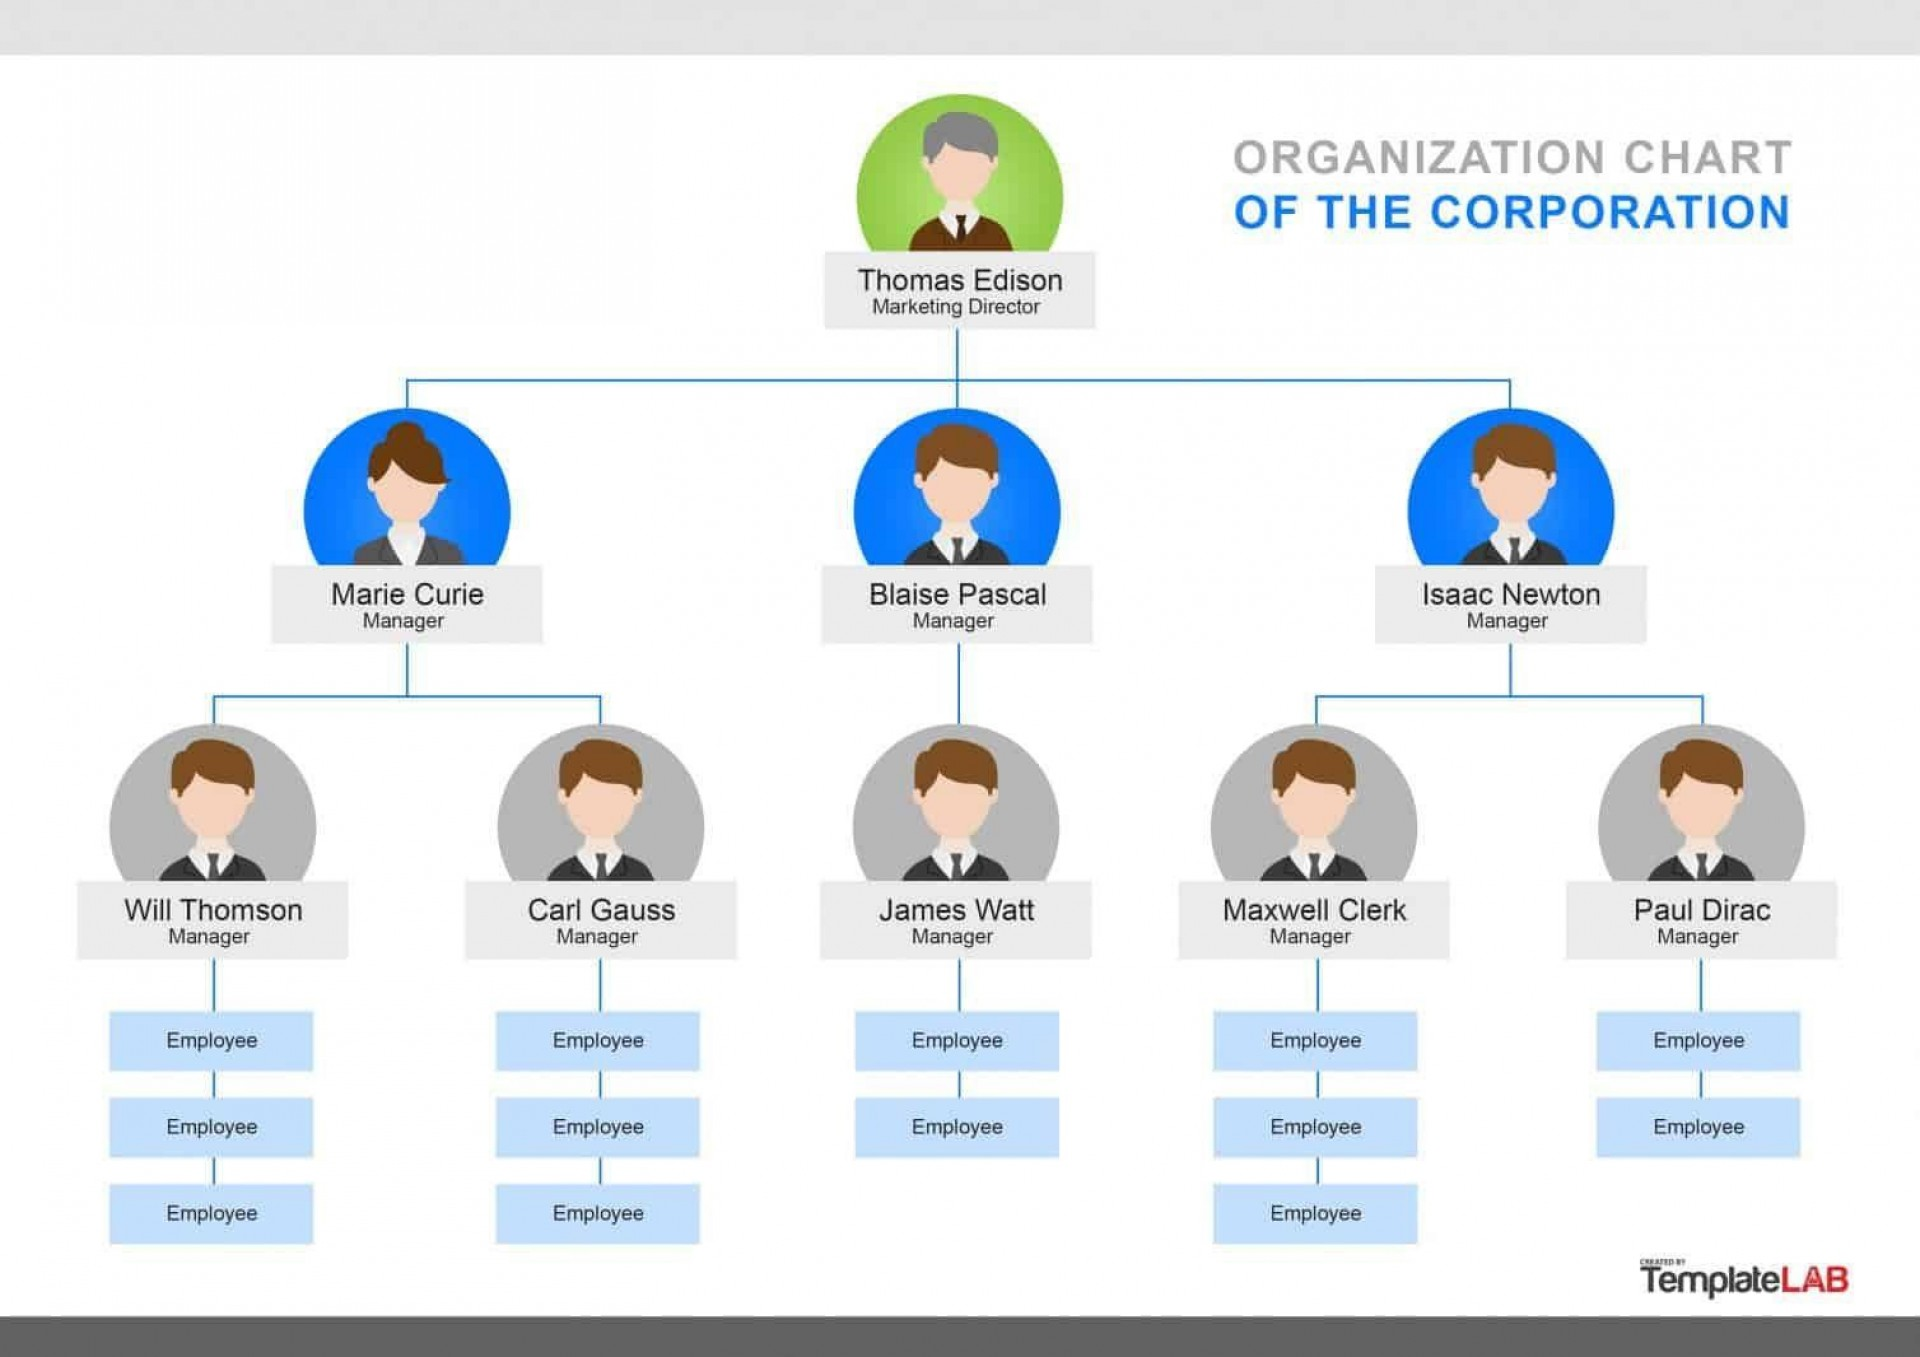 000 Beautiful Organization Chart Template Excel Download High Resolution  Org Organizational Format In1920